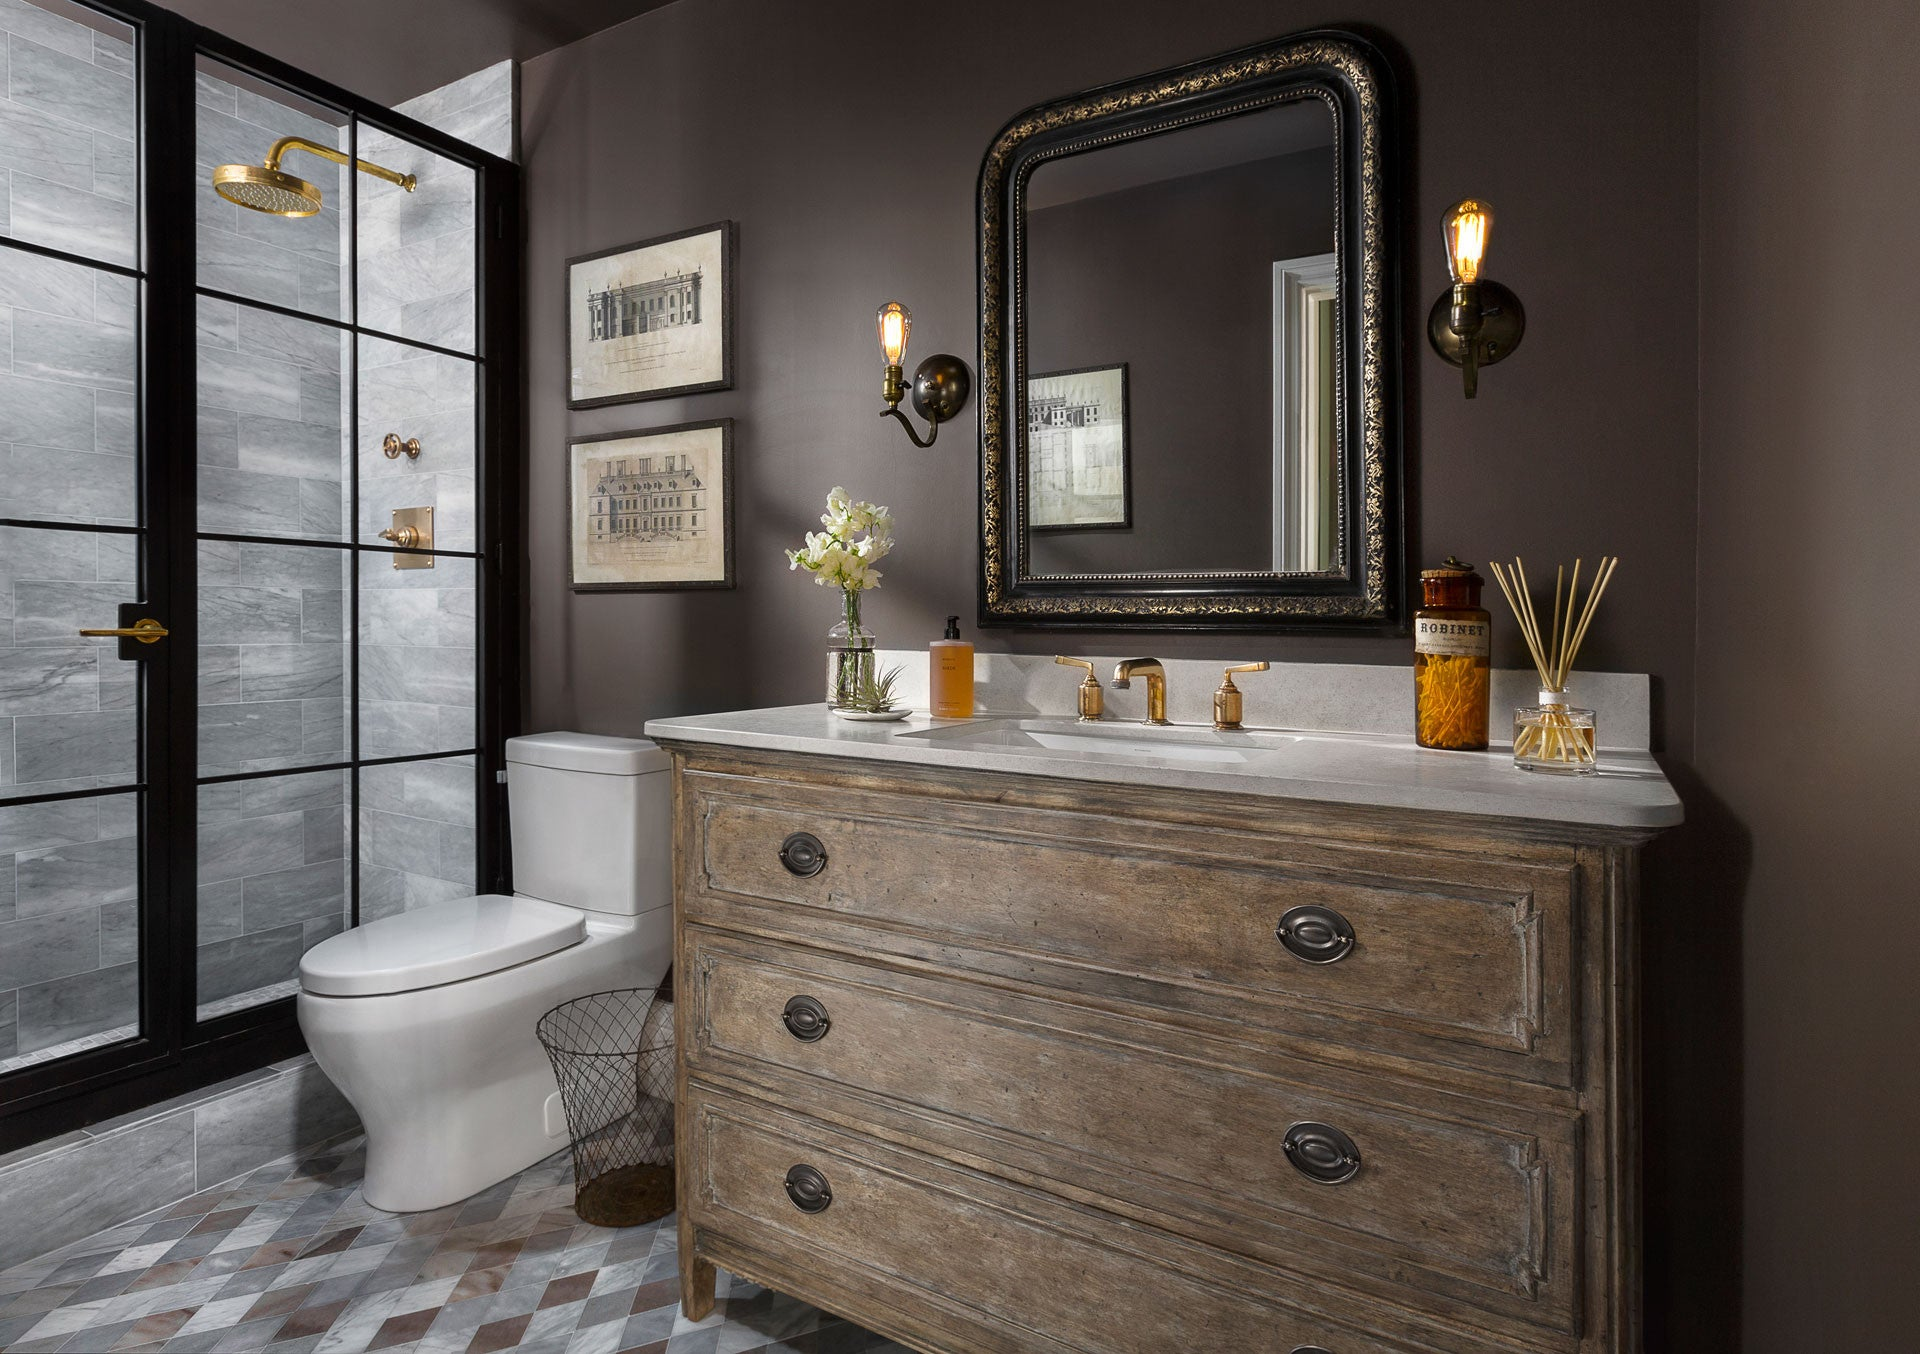 Beautiful bathroom design with rich deep brown walls. Design by Kymberley Fraser of A Beautiful Mess Home. #bathroom #brownwalls #farrowandballtannersbrown